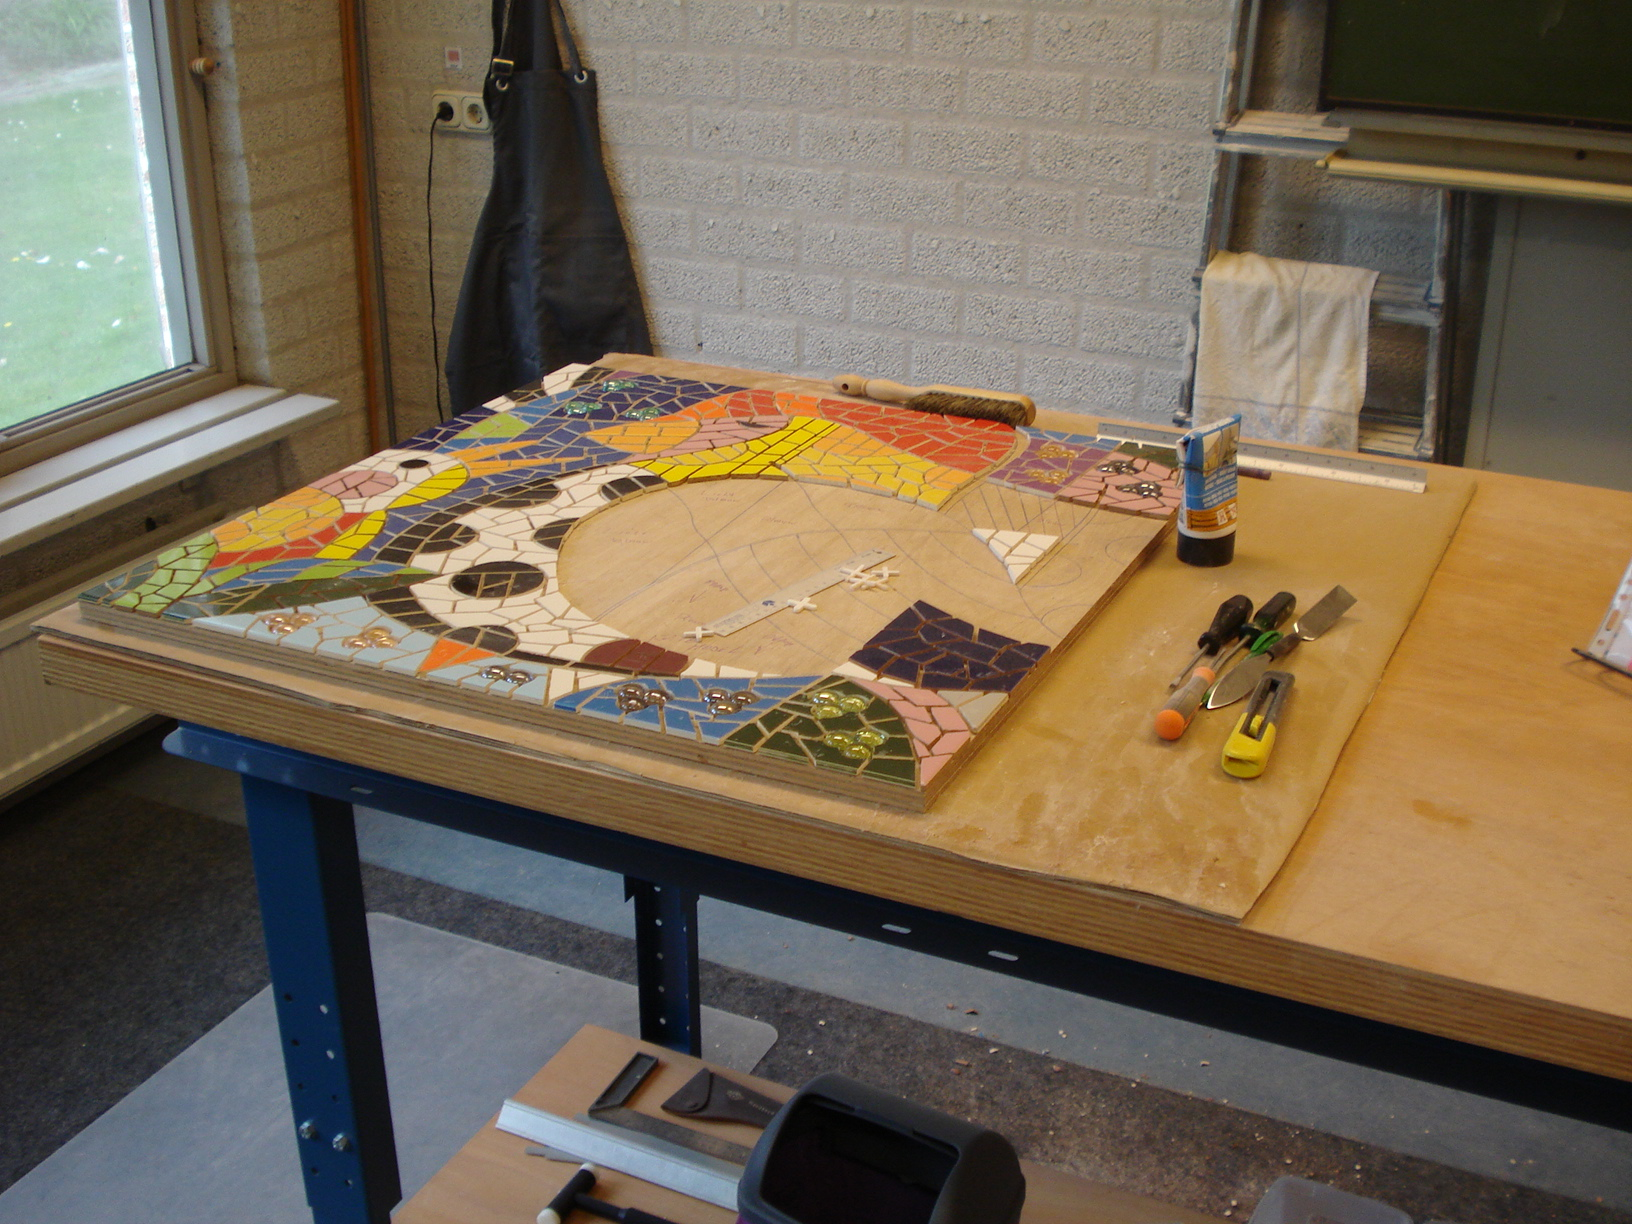 Atelier in Vught, Nederland (2)